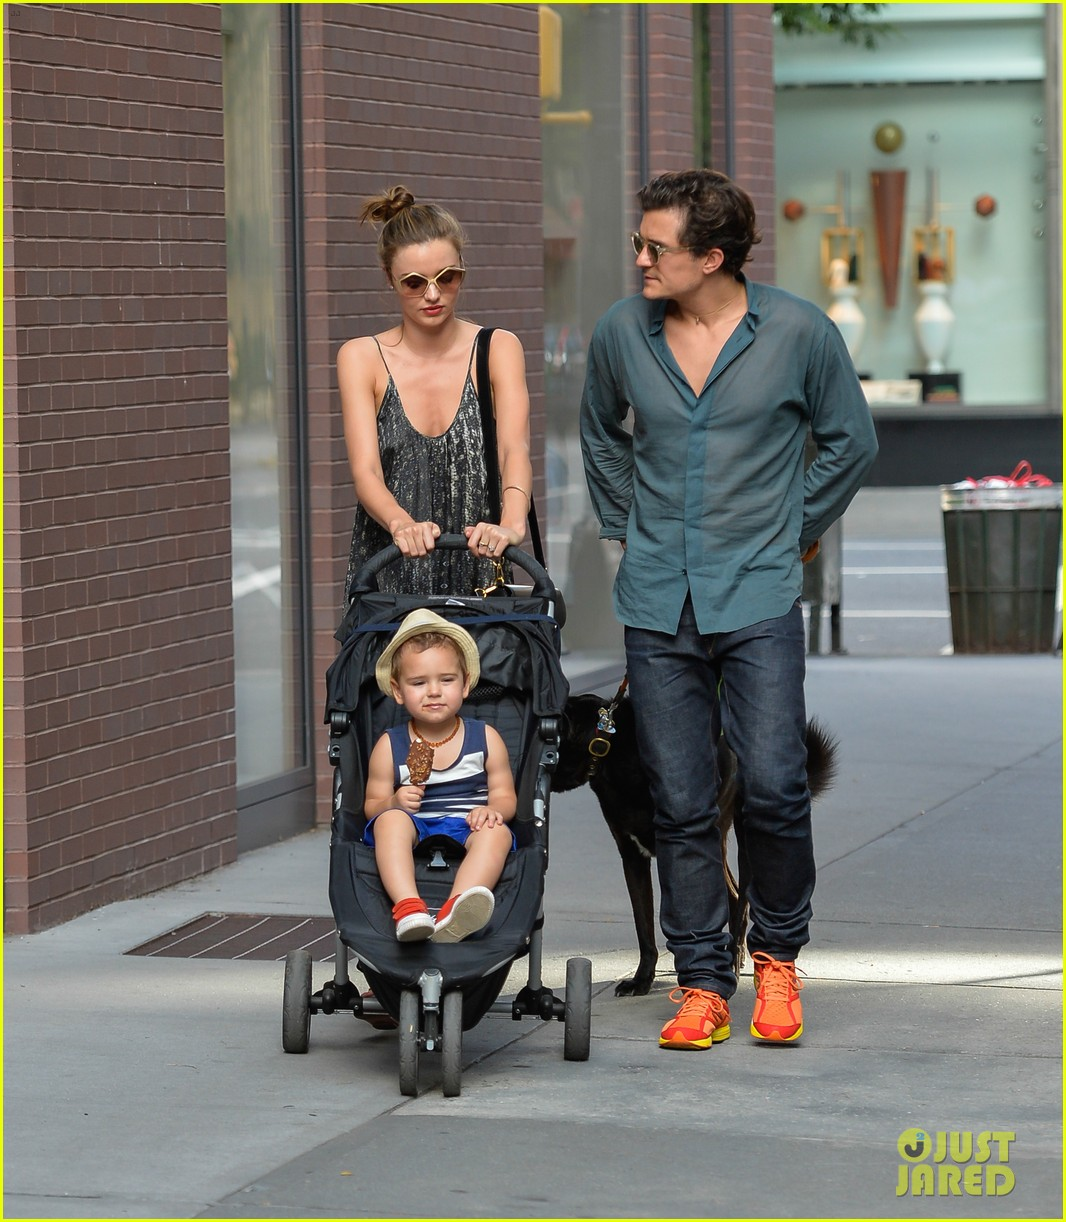 Orlando Bloom Fashion and Style | The Confused Dasher Orlando Bloom And Miranda Kerr Baby Flynn 2013